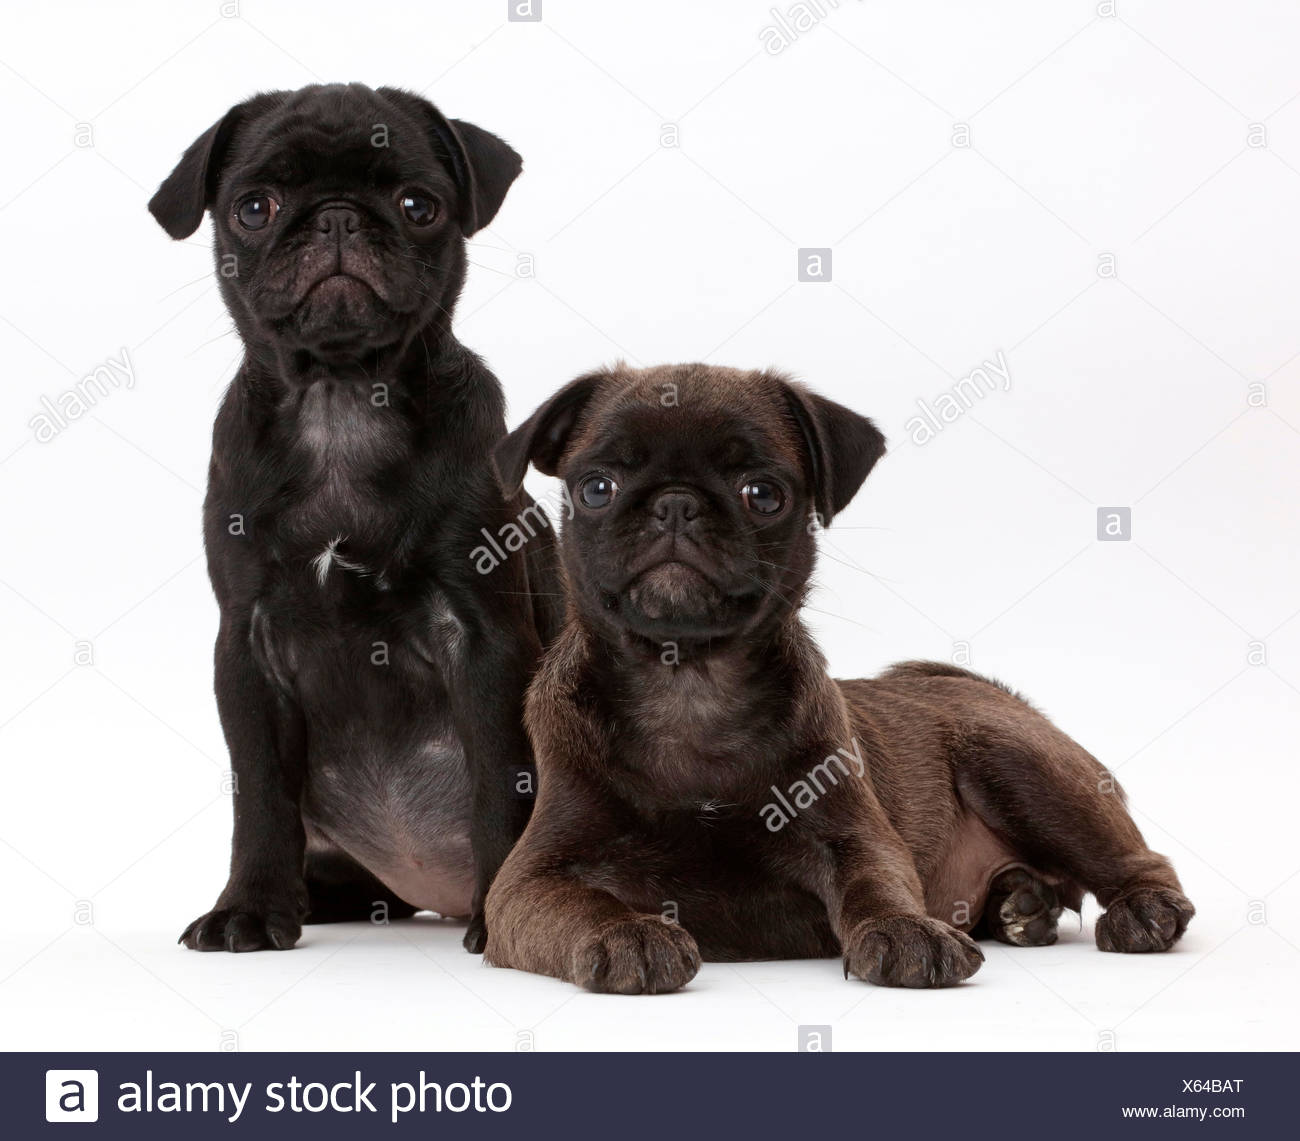 Black Pug and Platinum Pug pups. - Stock Image